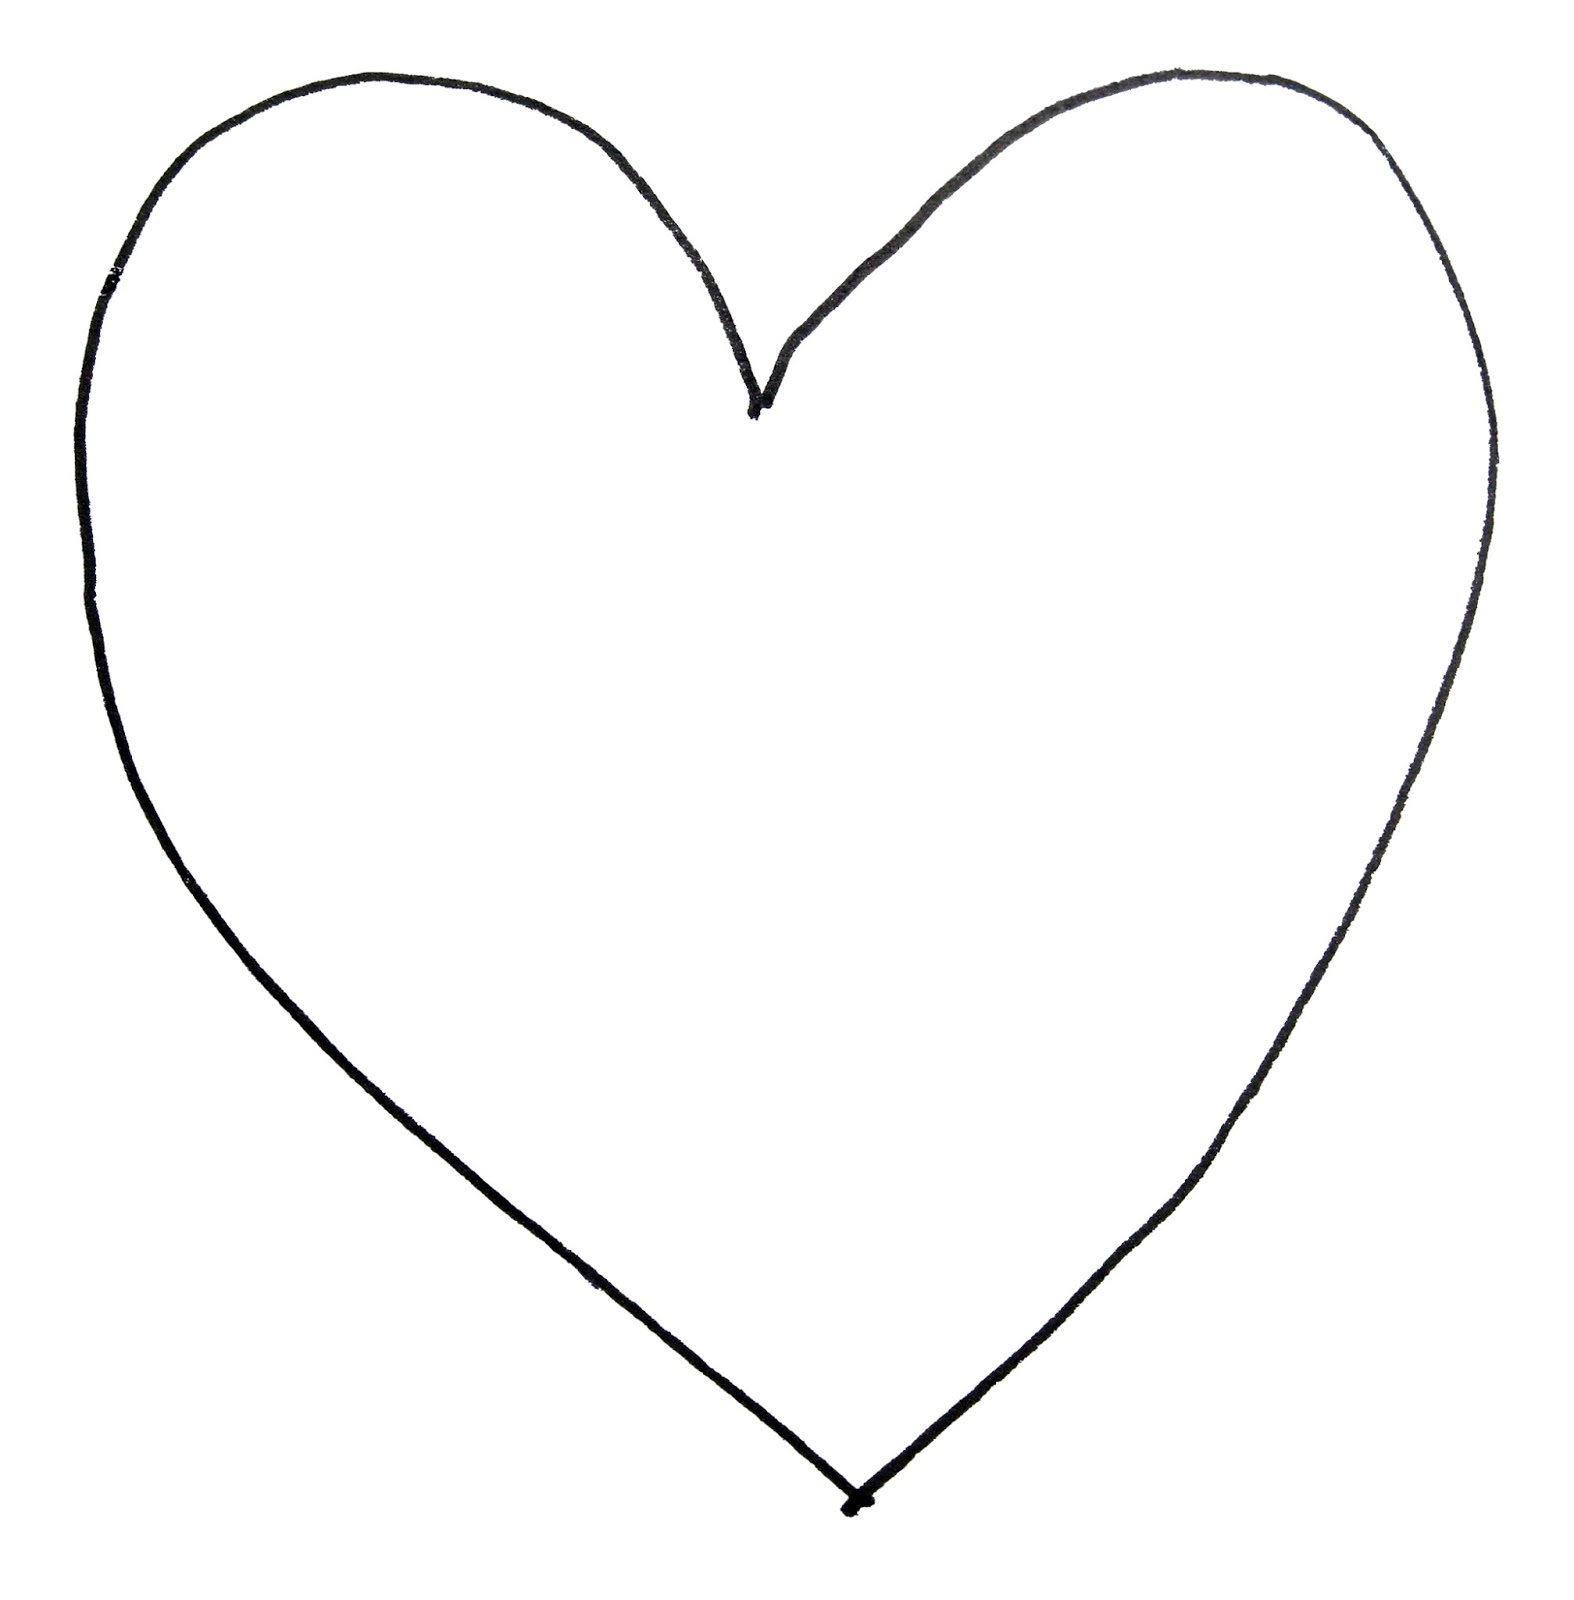 Printable Heart Shape Template - ClipArt Best - Cliparts.co